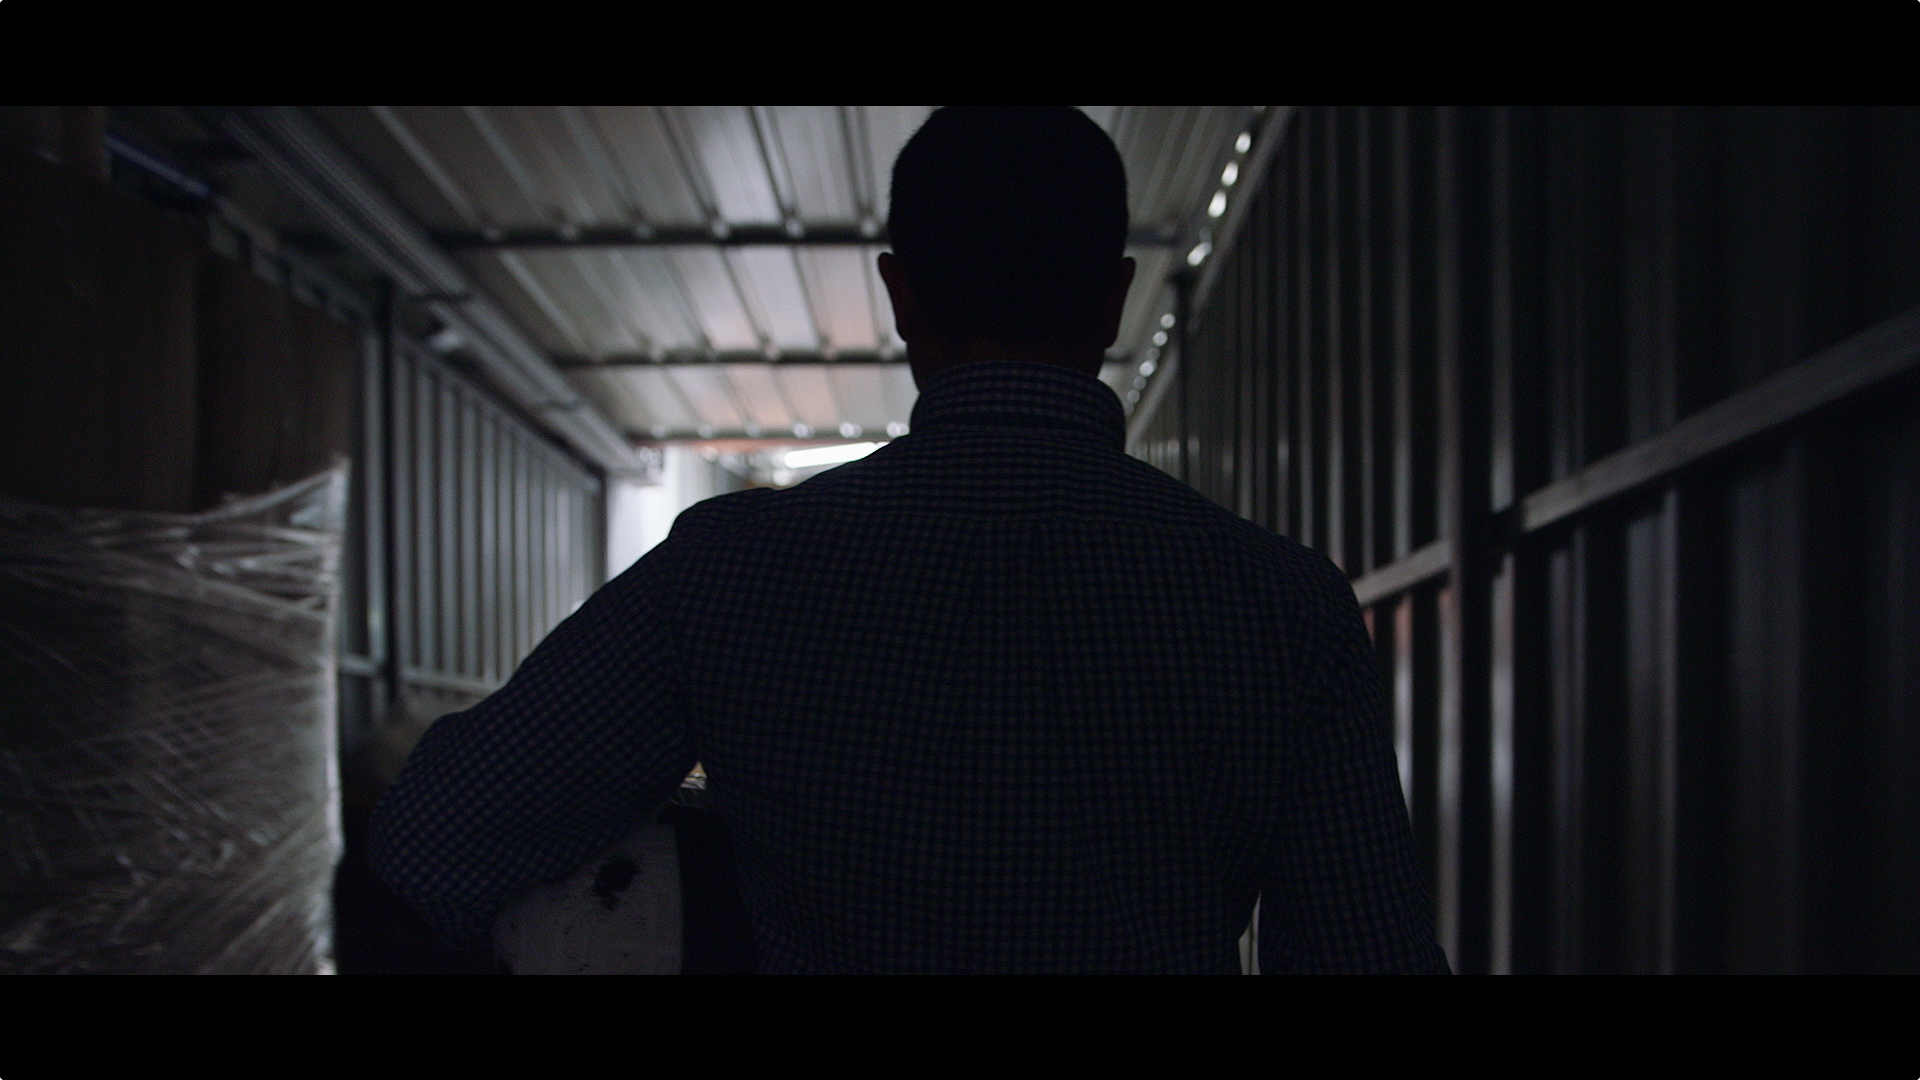 The film tells the story of Luis and the rest of the team at Nexx Helmets in Anadia, Portugal.